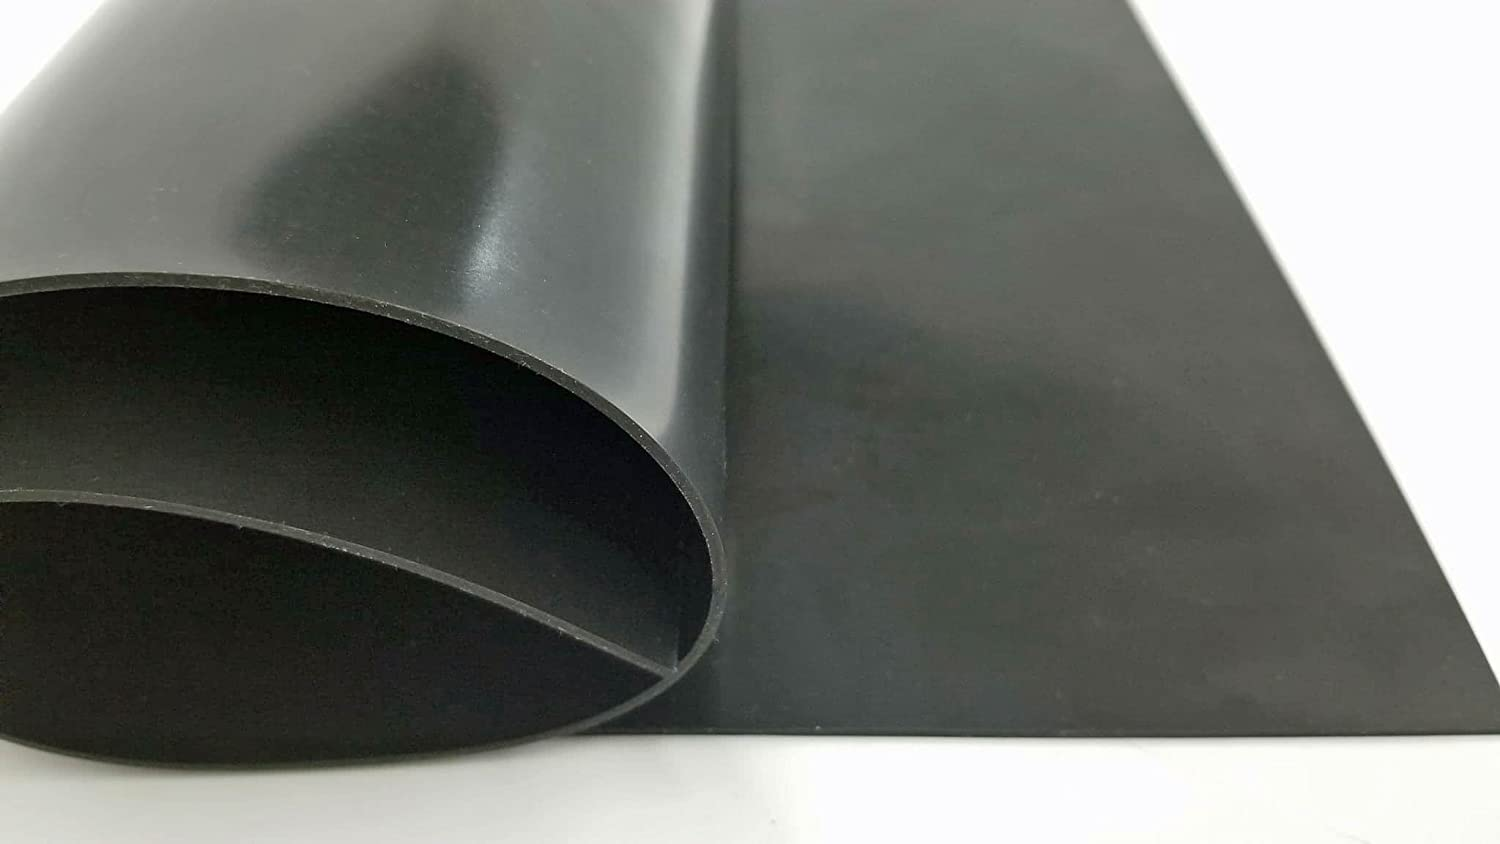 Amazon Com Viton Sheet Rubber High Performance High Temperature Chemical Resistant Much More Commercial Grade 75a 5 Medium Hardness Cinnamon Scented 062x6x6 Home Improvement